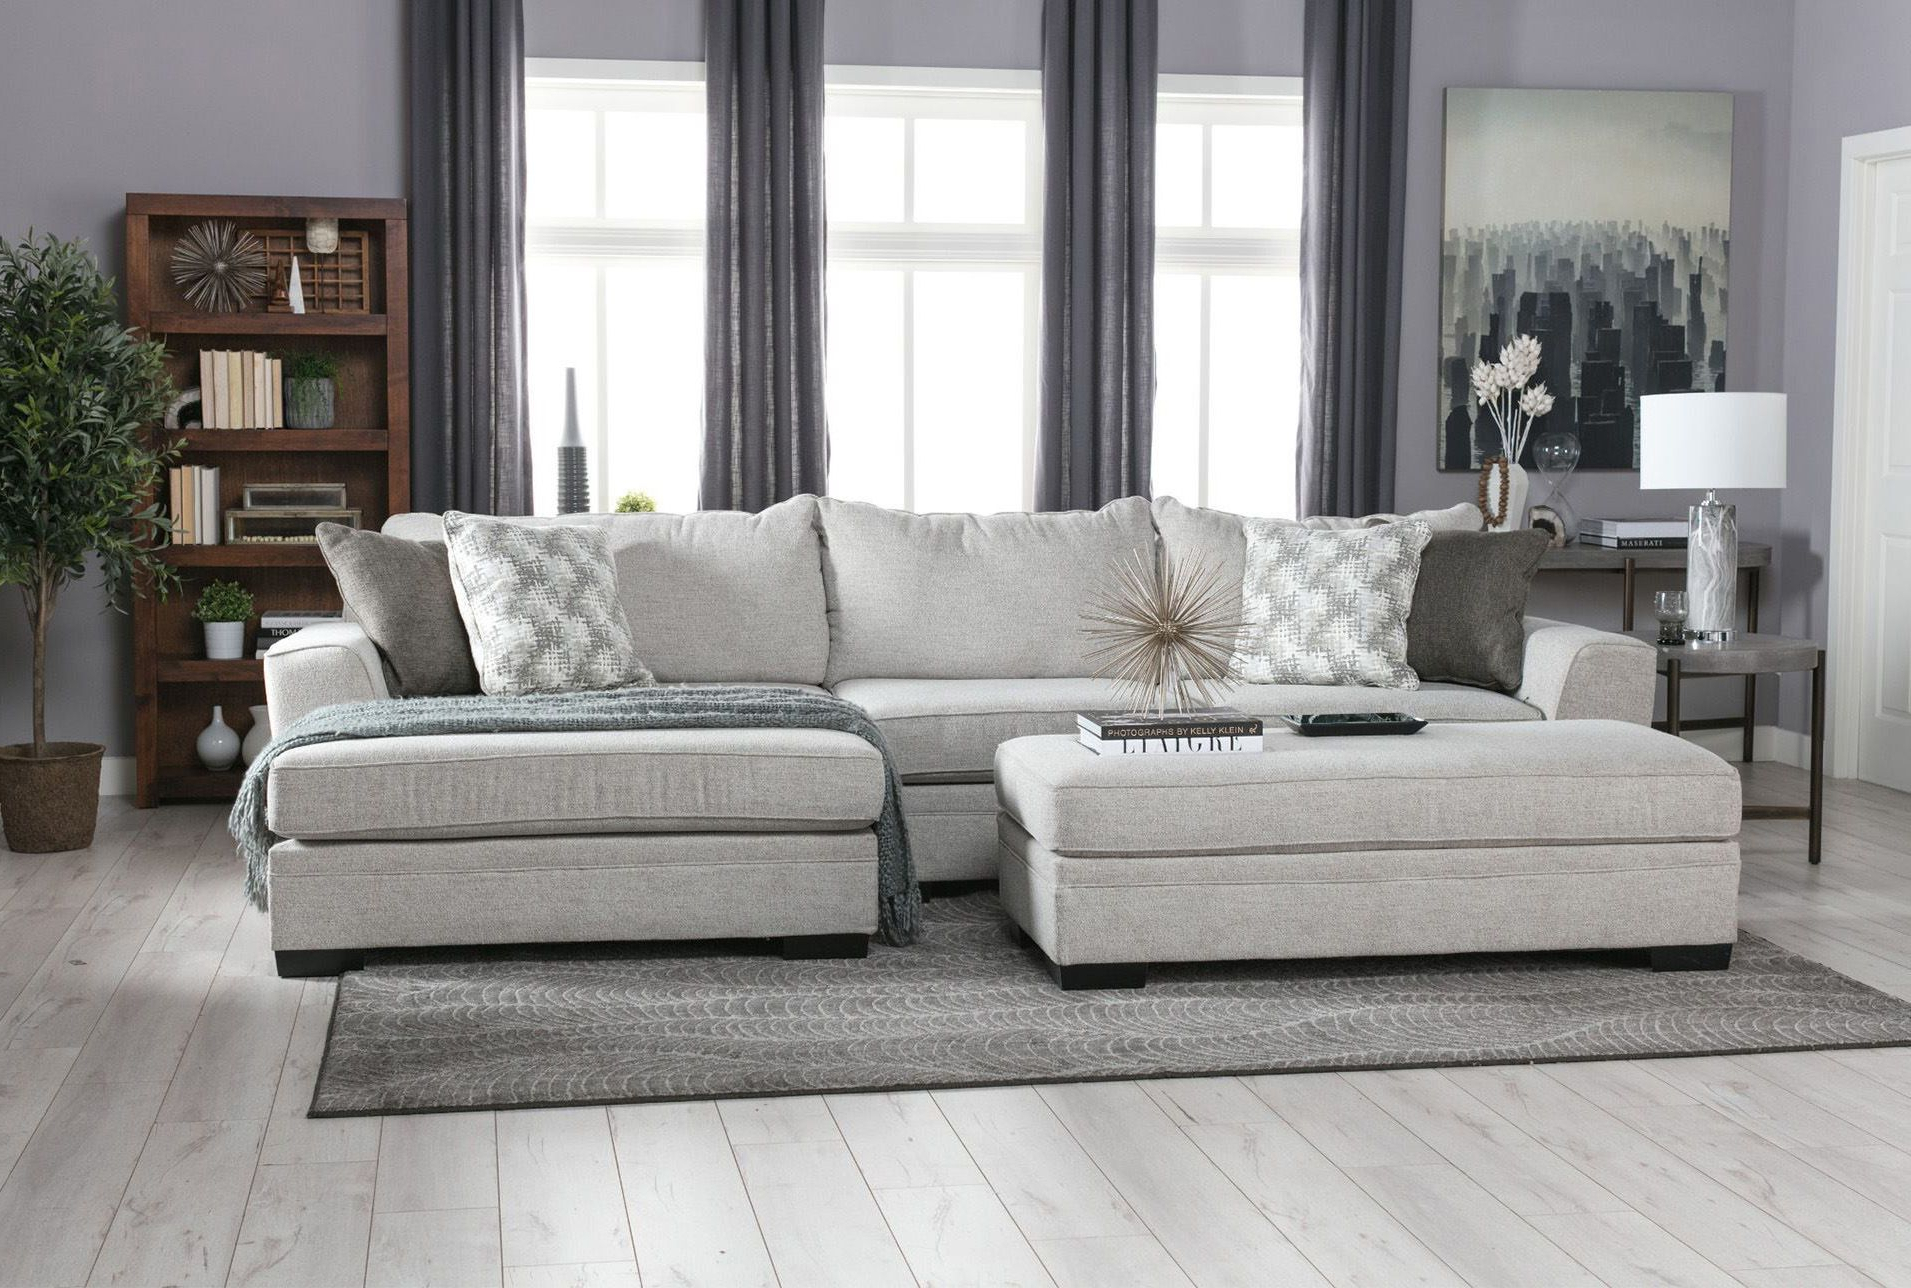 Best And Newest Aquarius Light Grey 2 Piece Sectionals With Laf Chaise Intended For Delano 2 Piece Sectional W/raf Oversized Chaise In 2018 (Gallery 7 of 20)